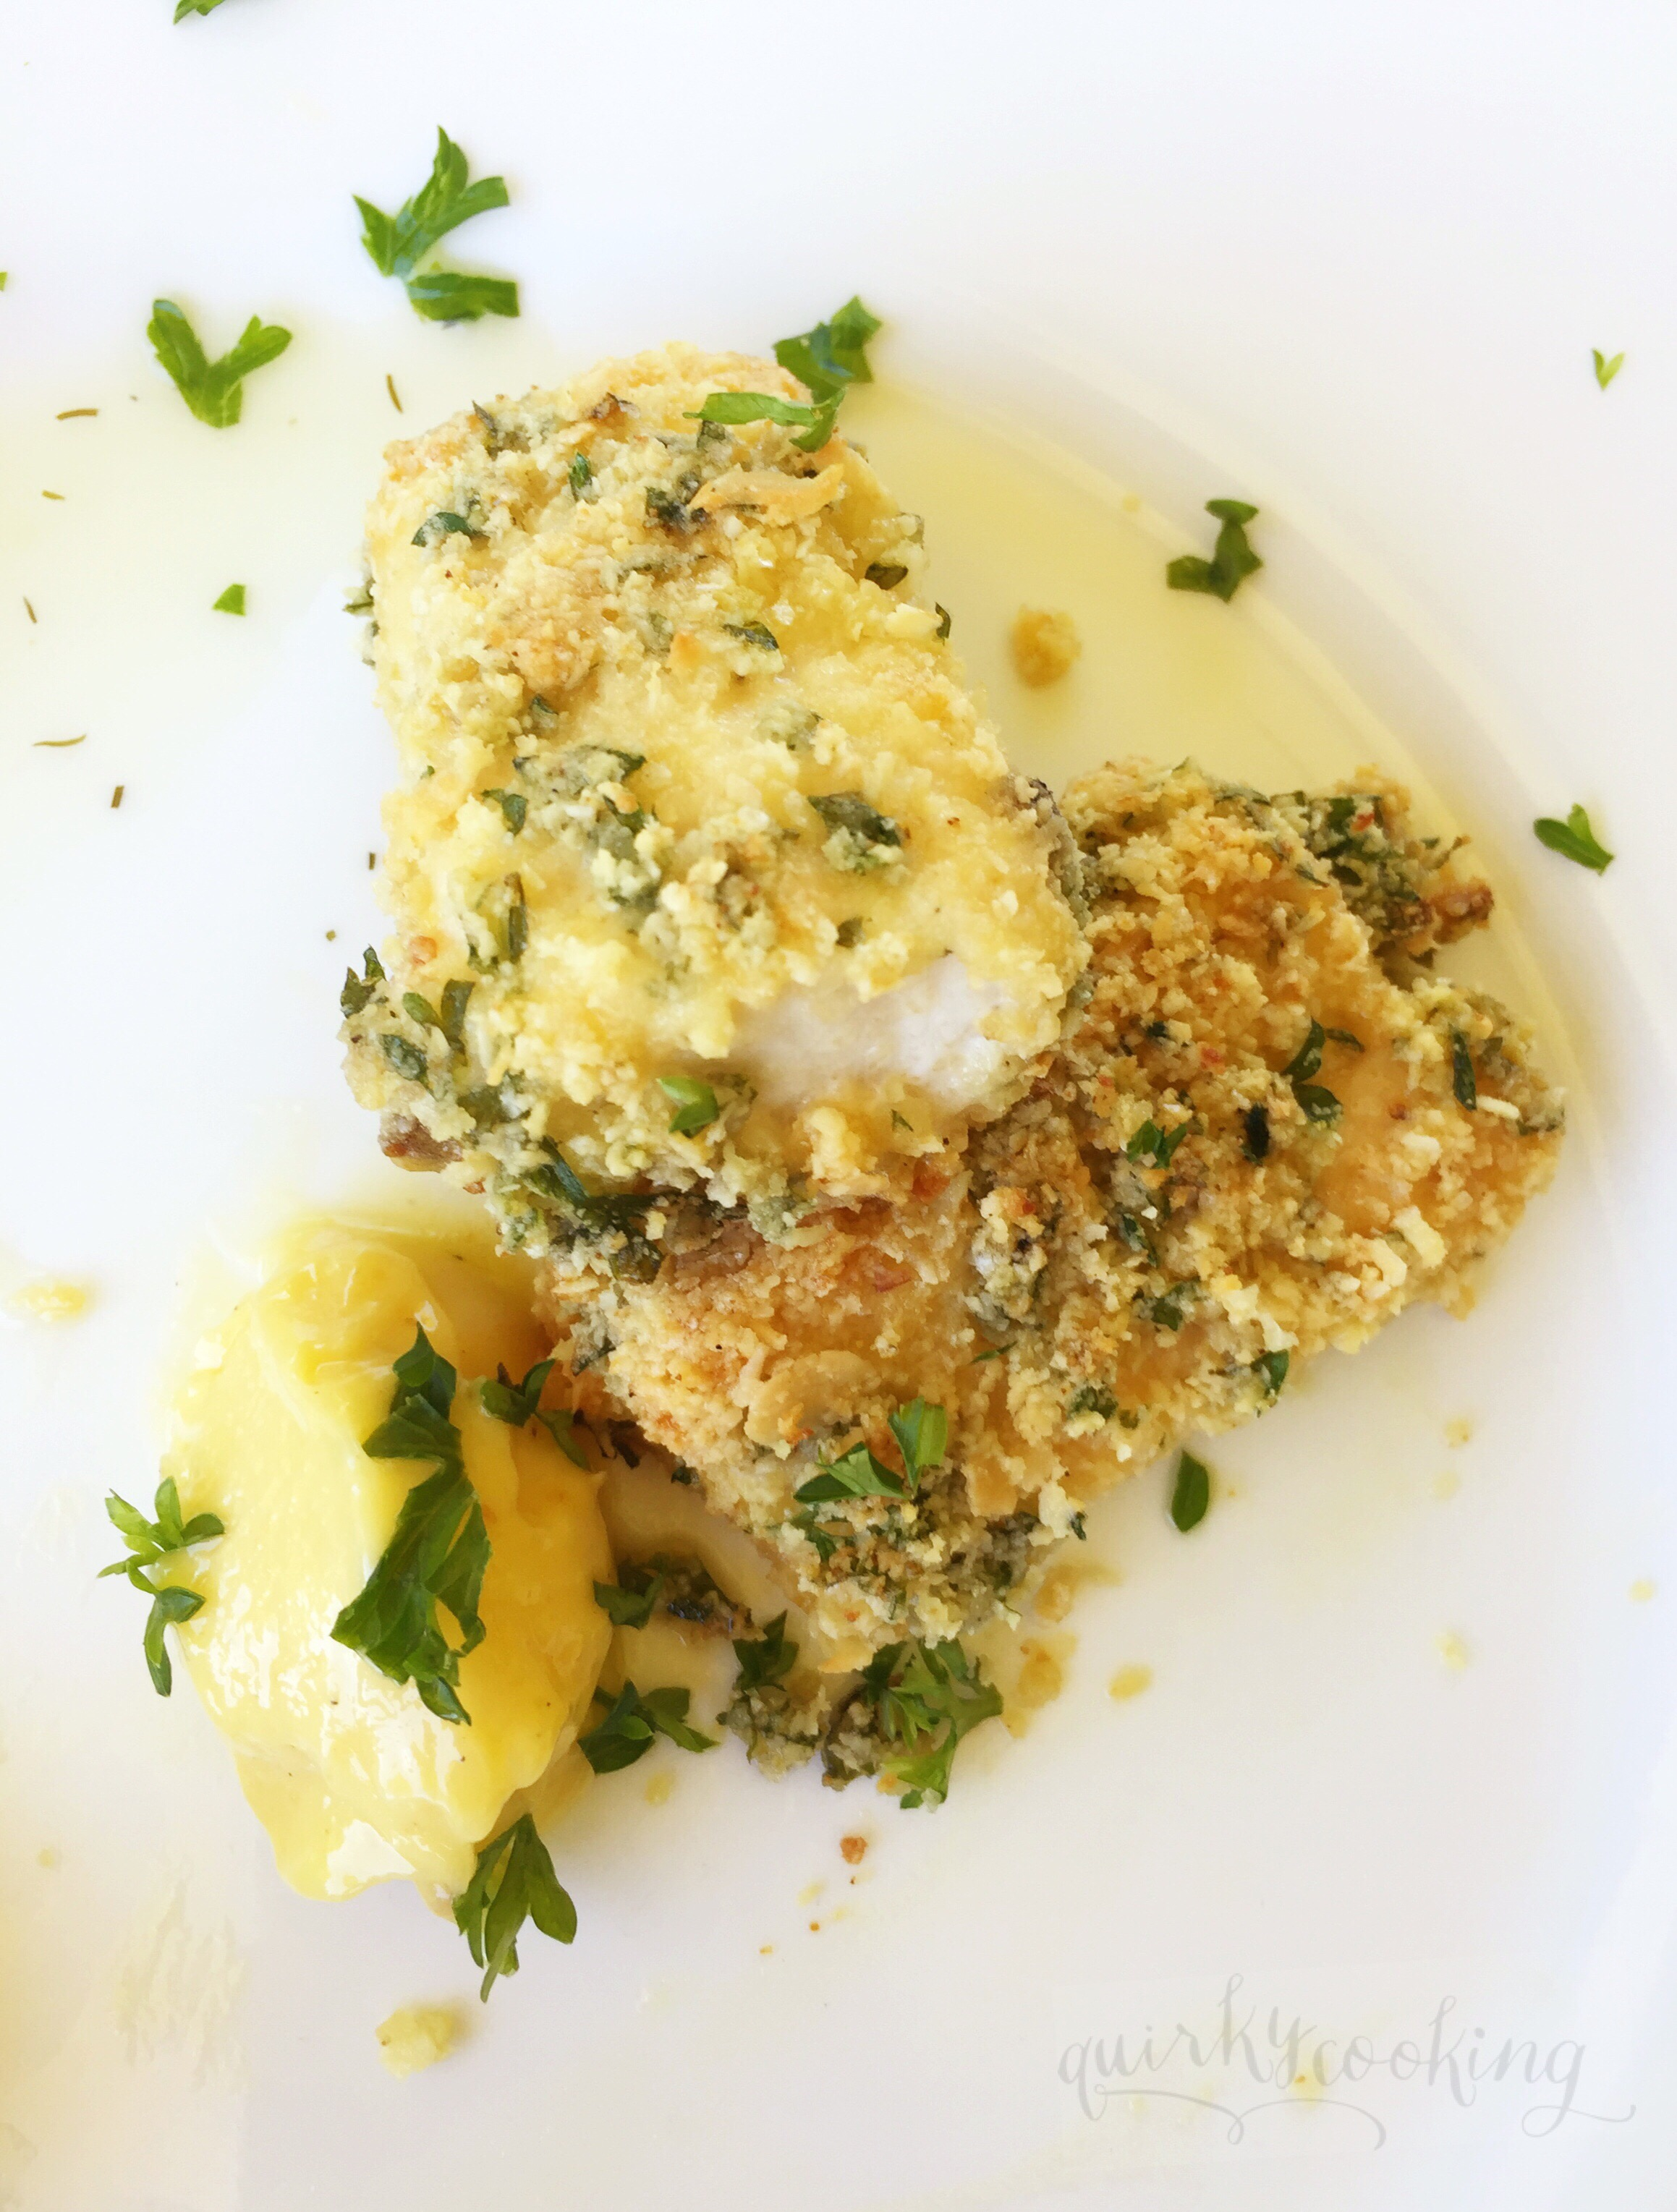 Bake Fish Fingers (Grain Free), Quirky Cooking